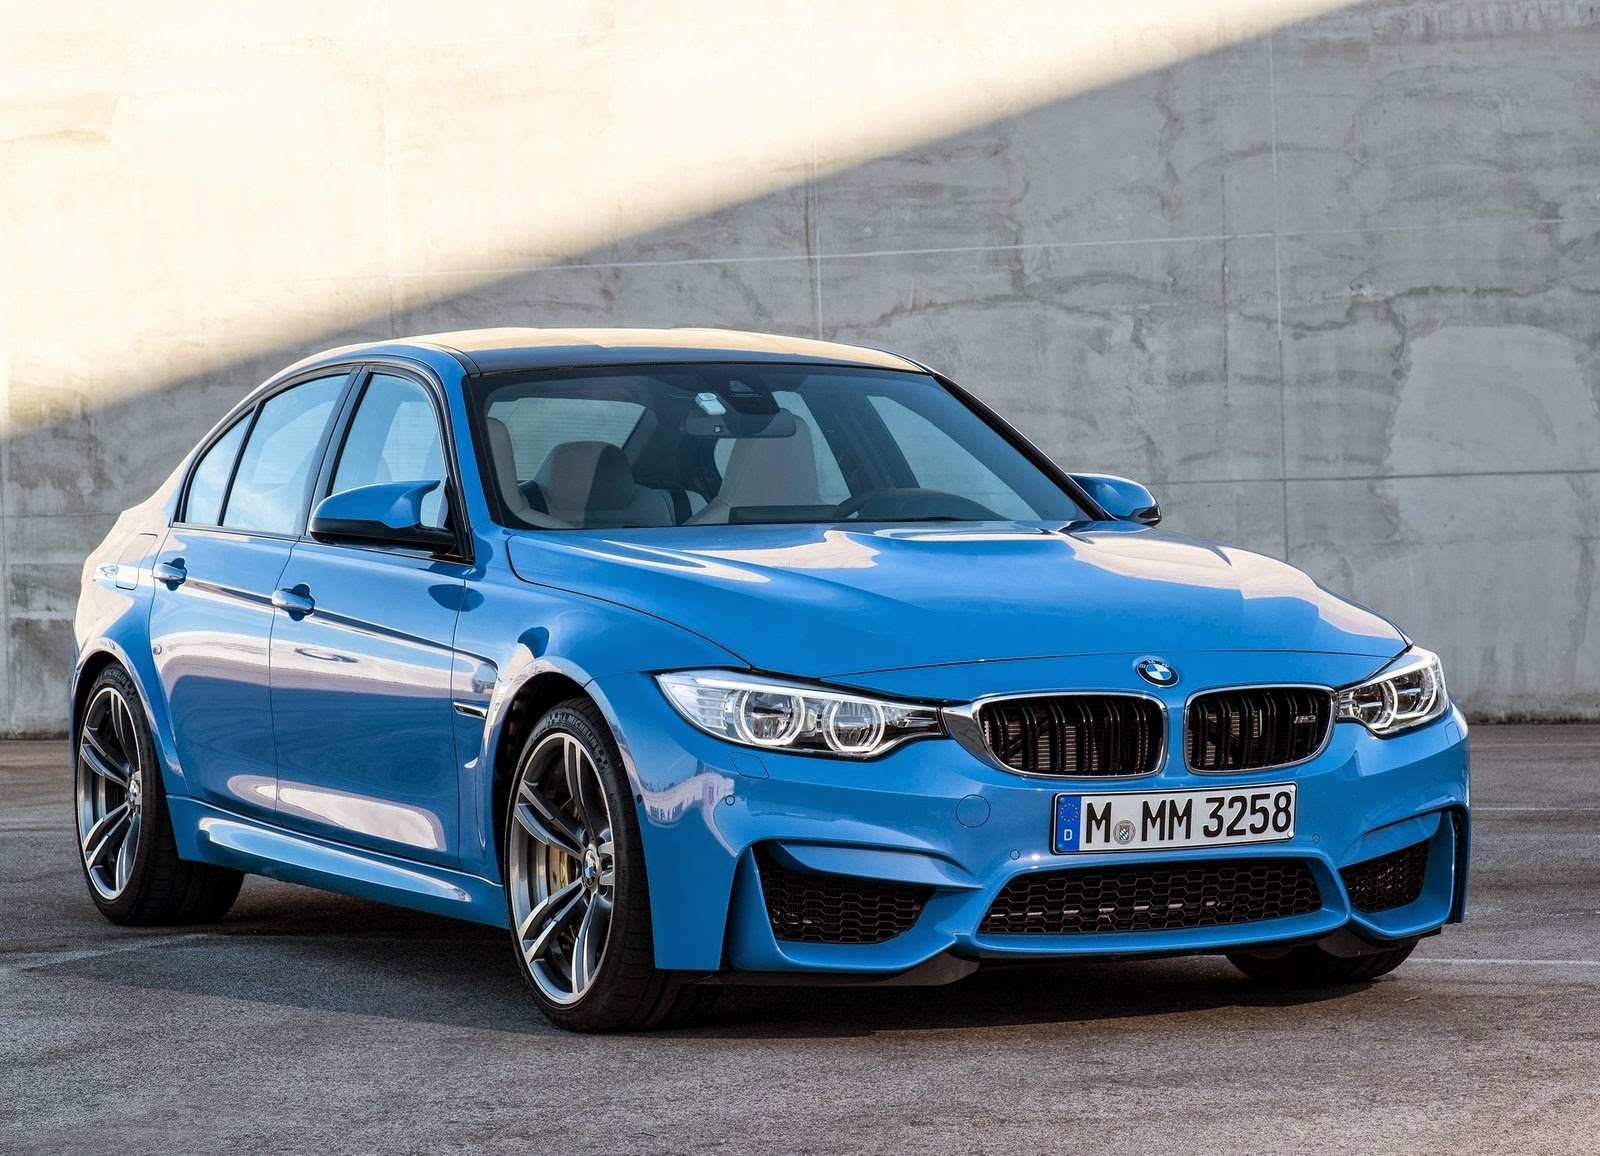 BMW M3 Sedan Blue 2015 Car Wallpaper Classic Car Wallpaper Hdfor